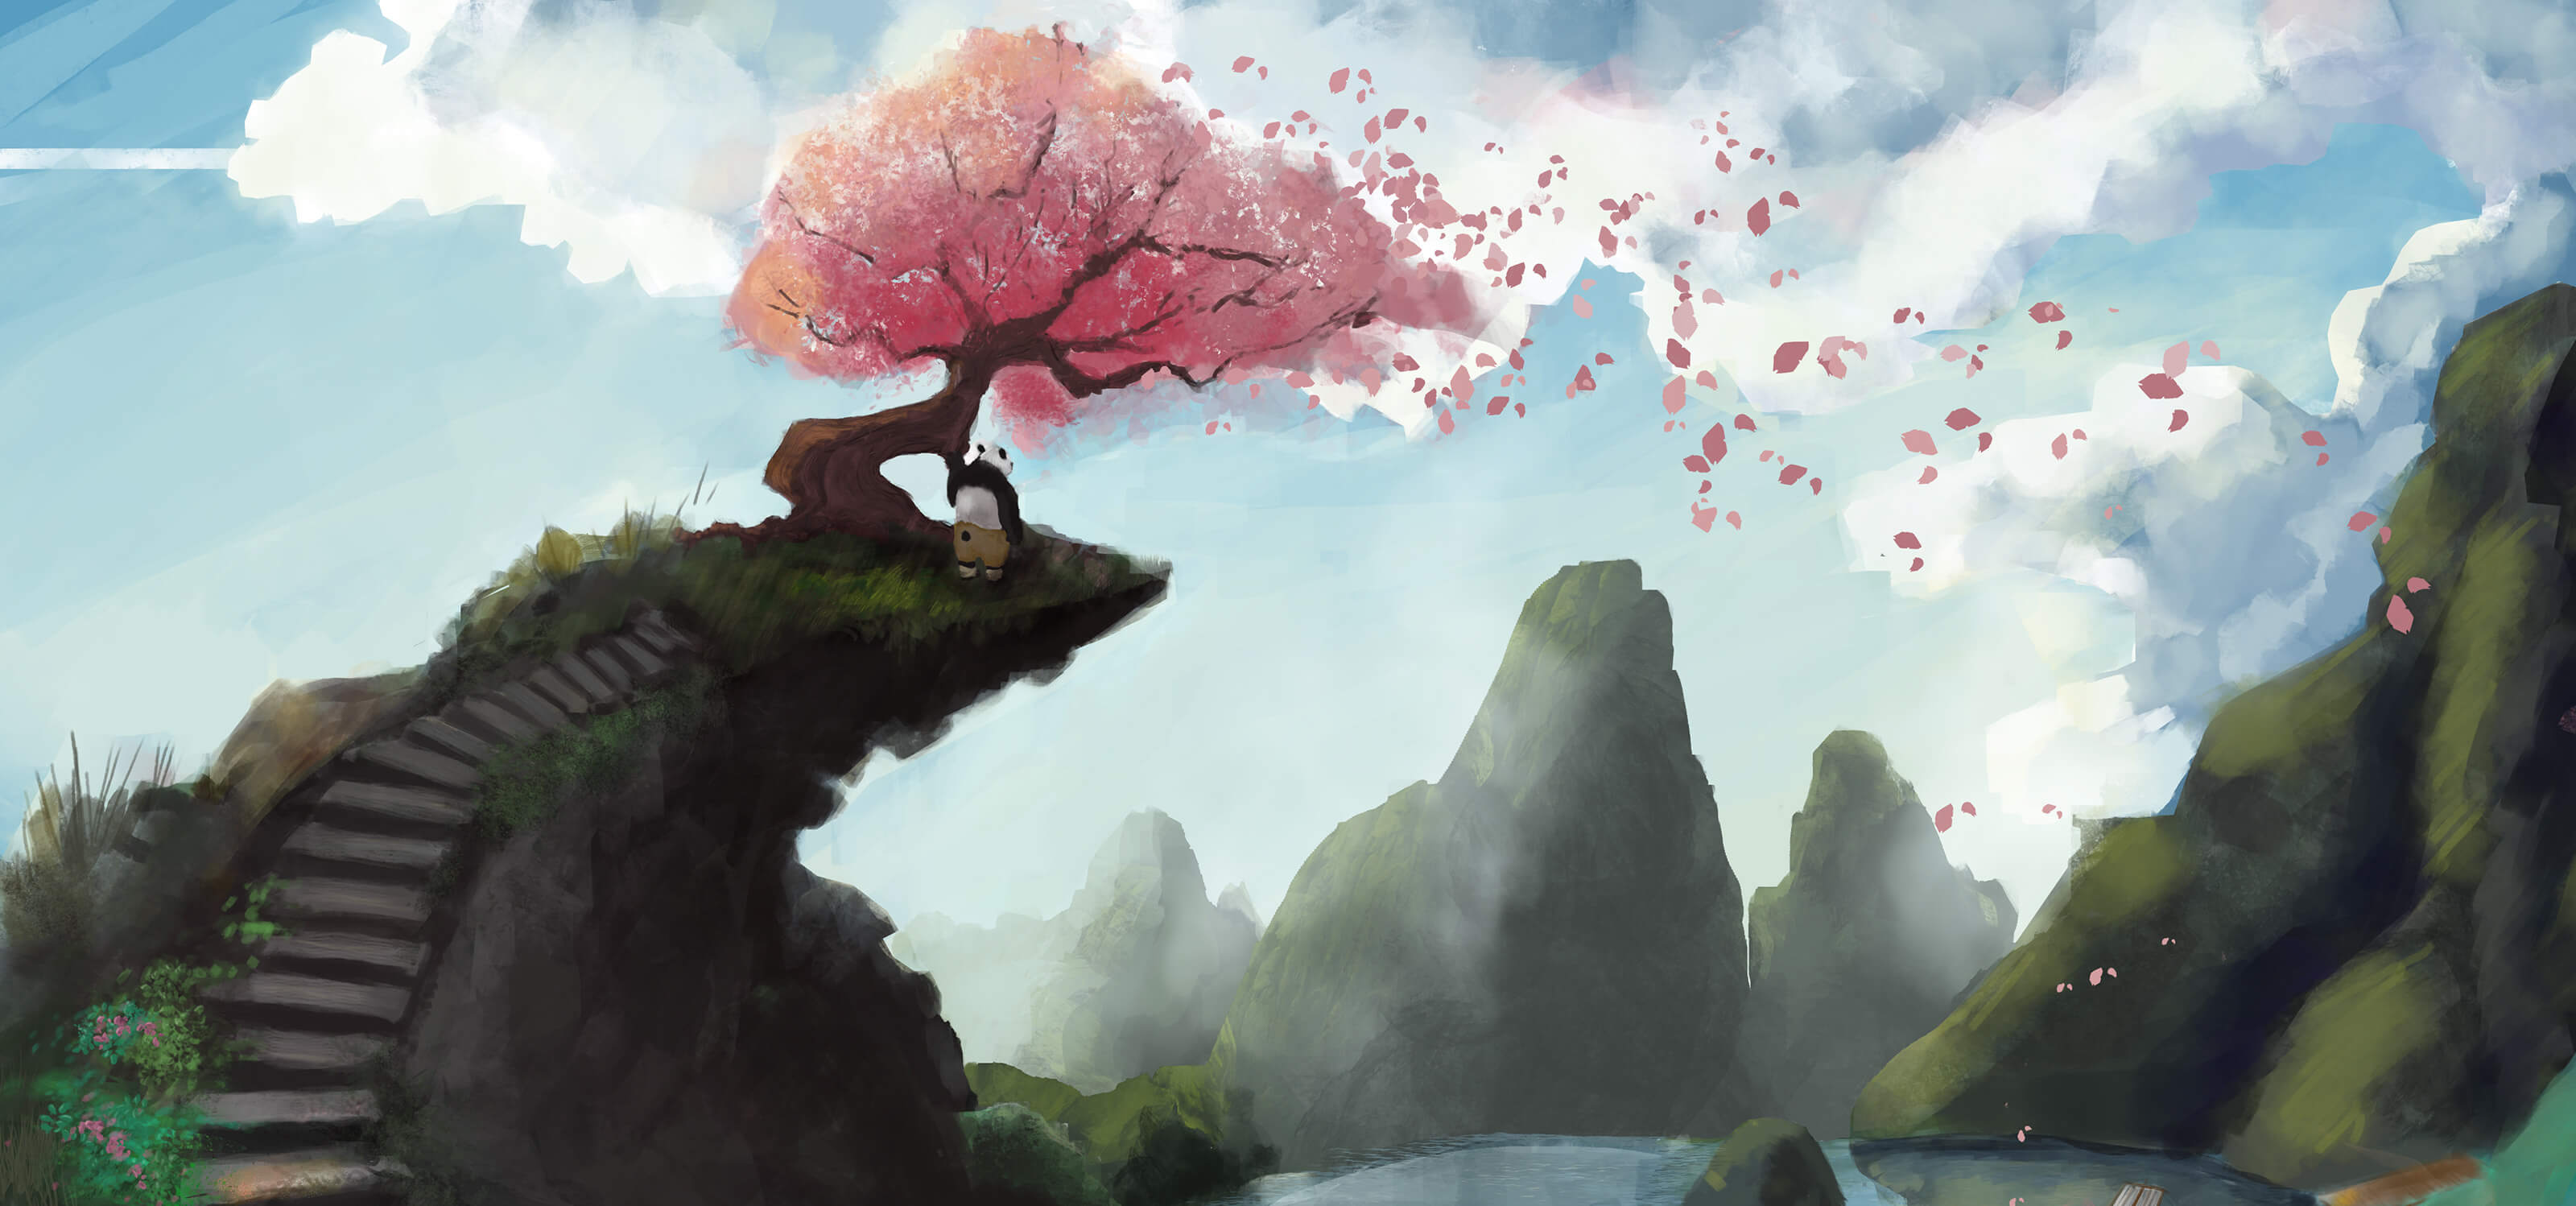 Digital painting of a panda standing on a cliff under a cherry tree overlooking a lake and mountains